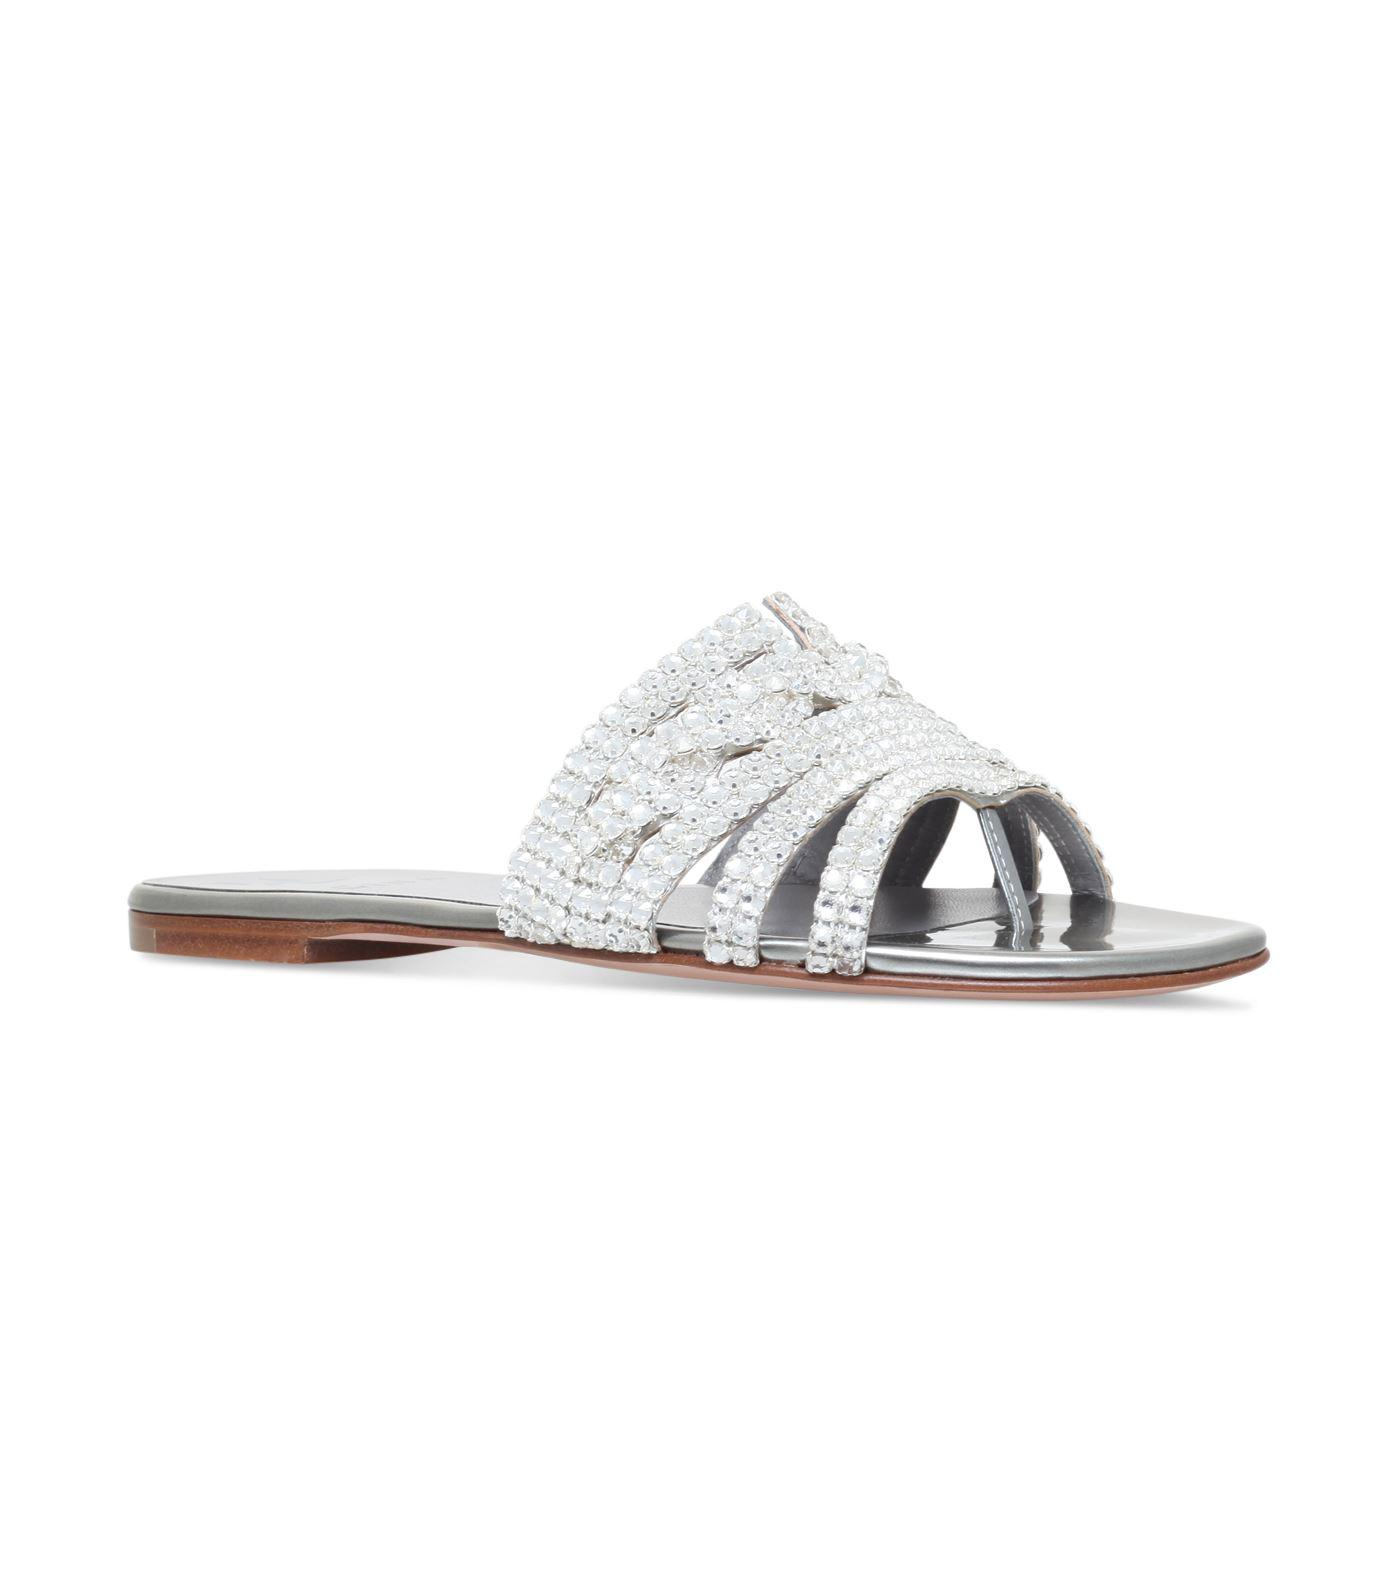 86dfe3b3a4fb Gina Embellished Loren Slides in Metallic - Lyst